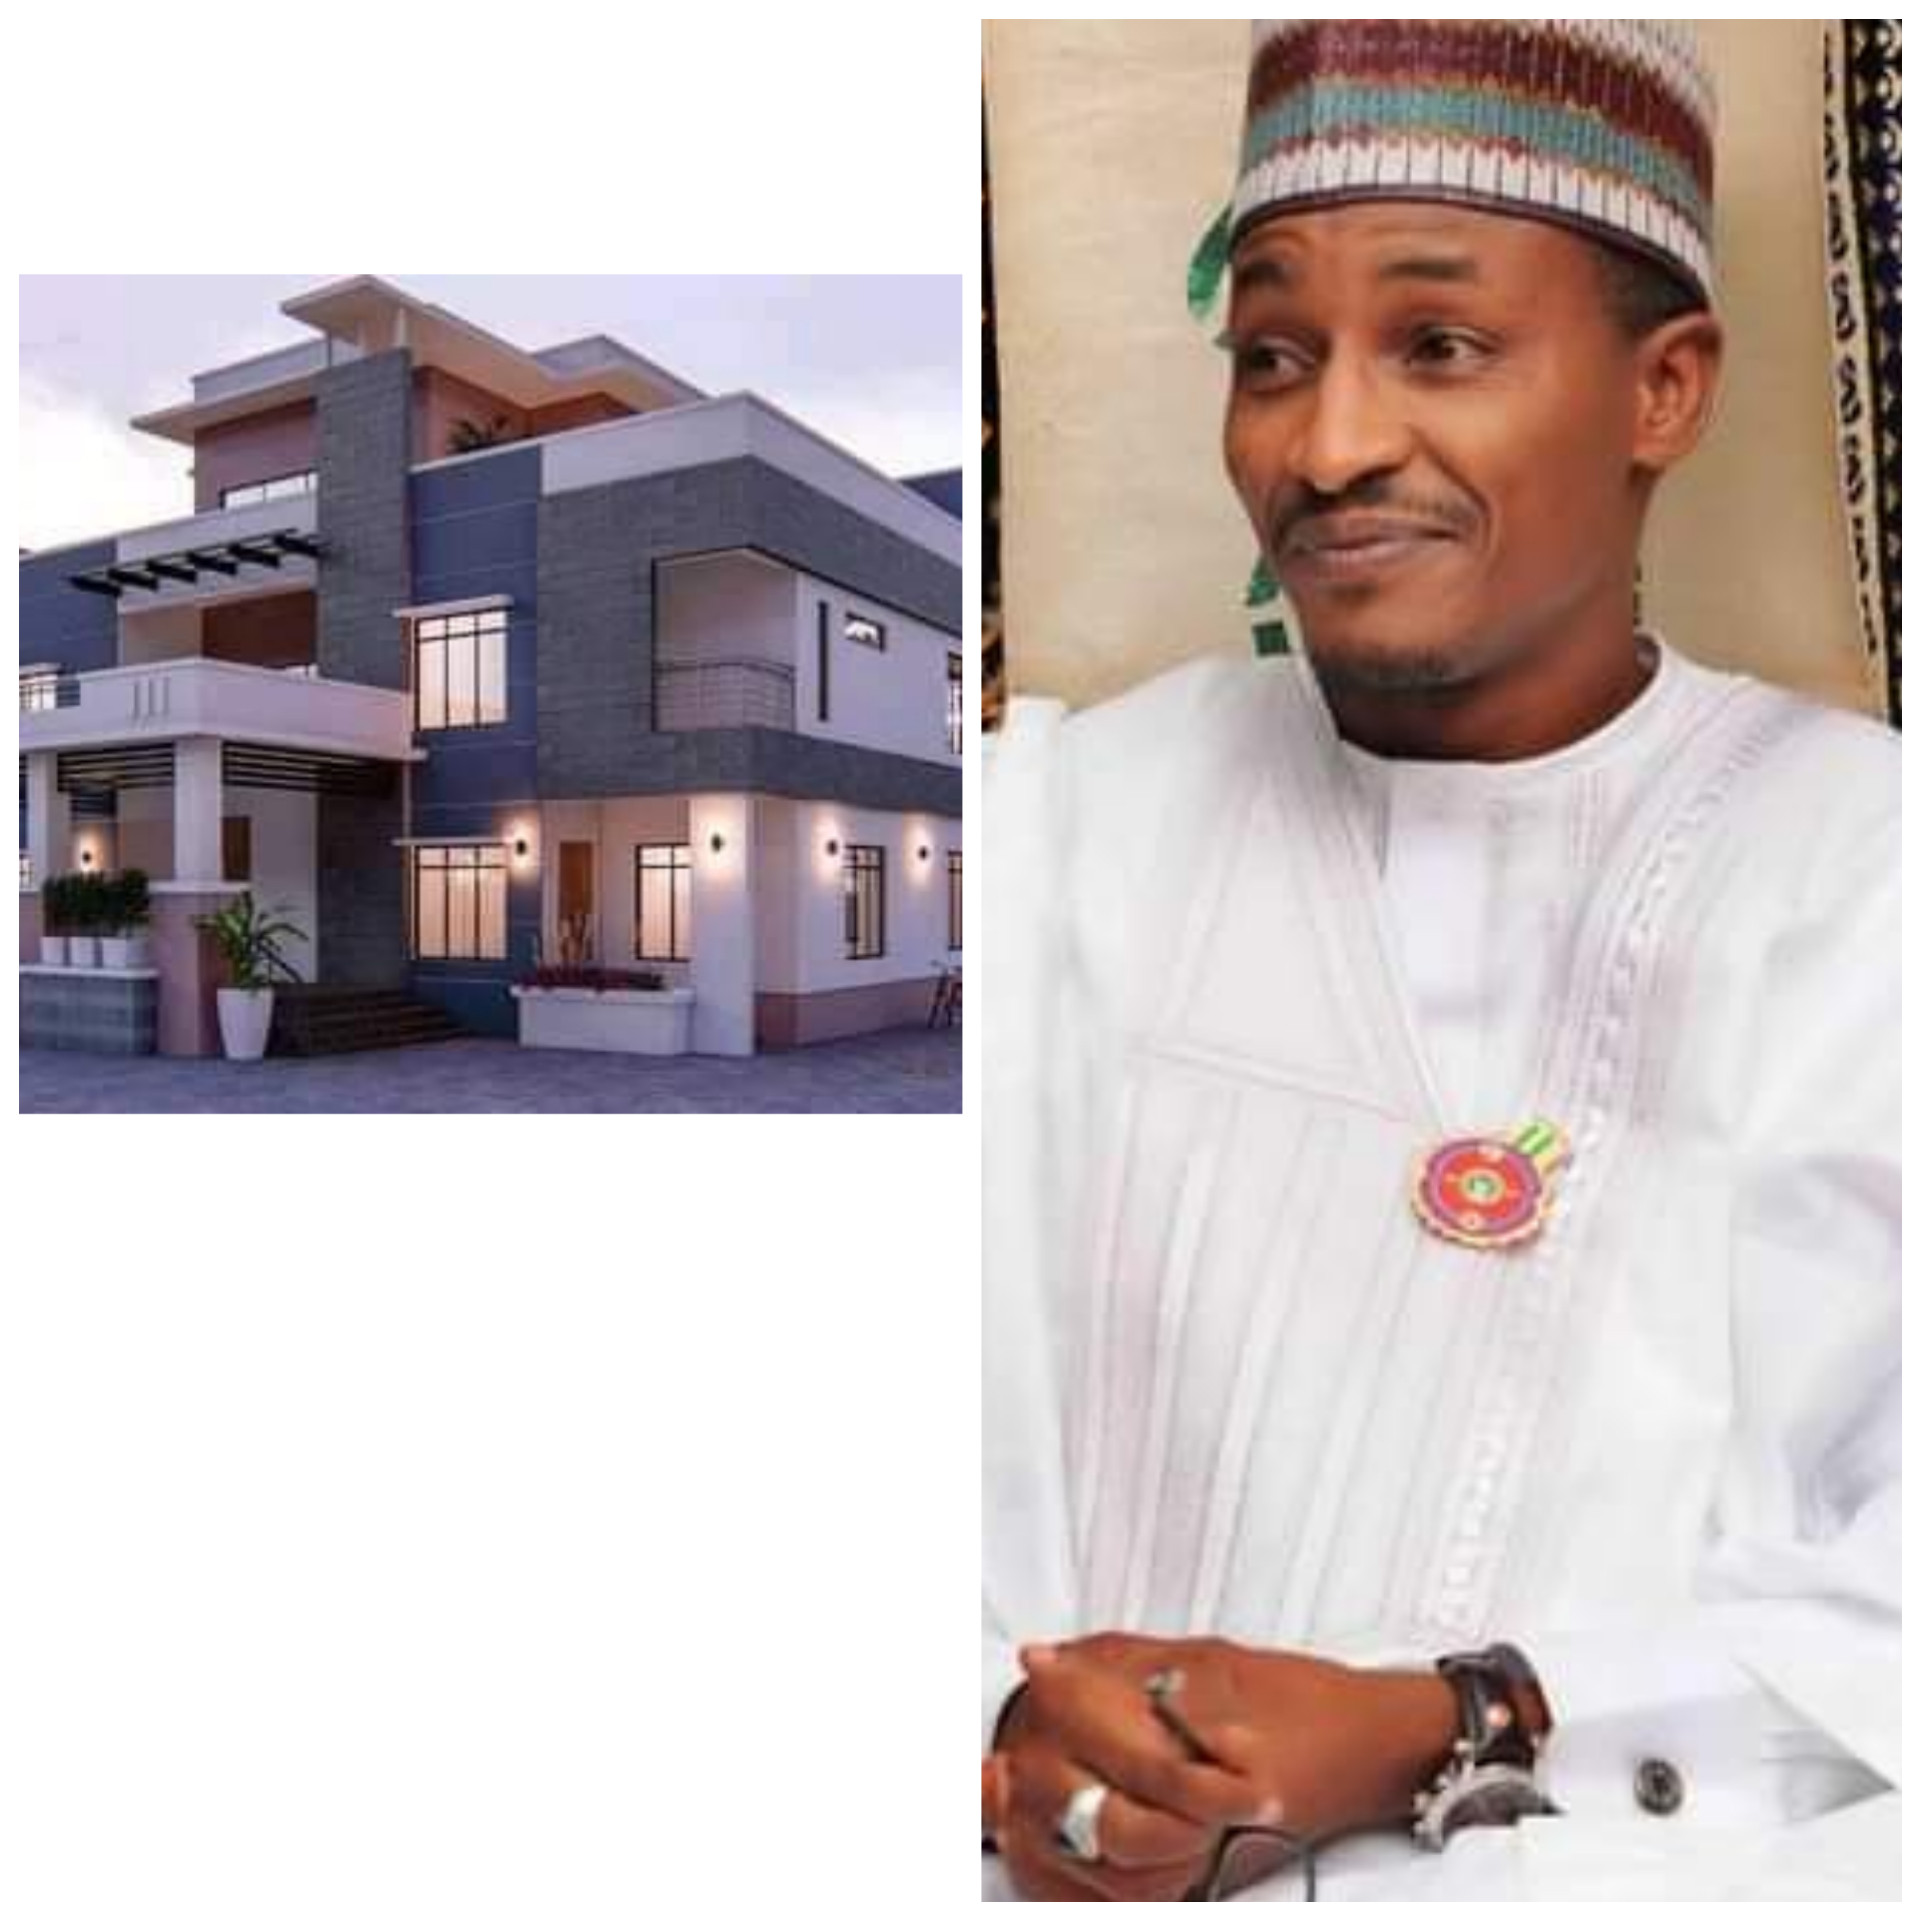 PRESIDENT BUHARI'S NEPHEW SHOWS OFF HIS NEWLY COMPLETED ABUJA MANSION